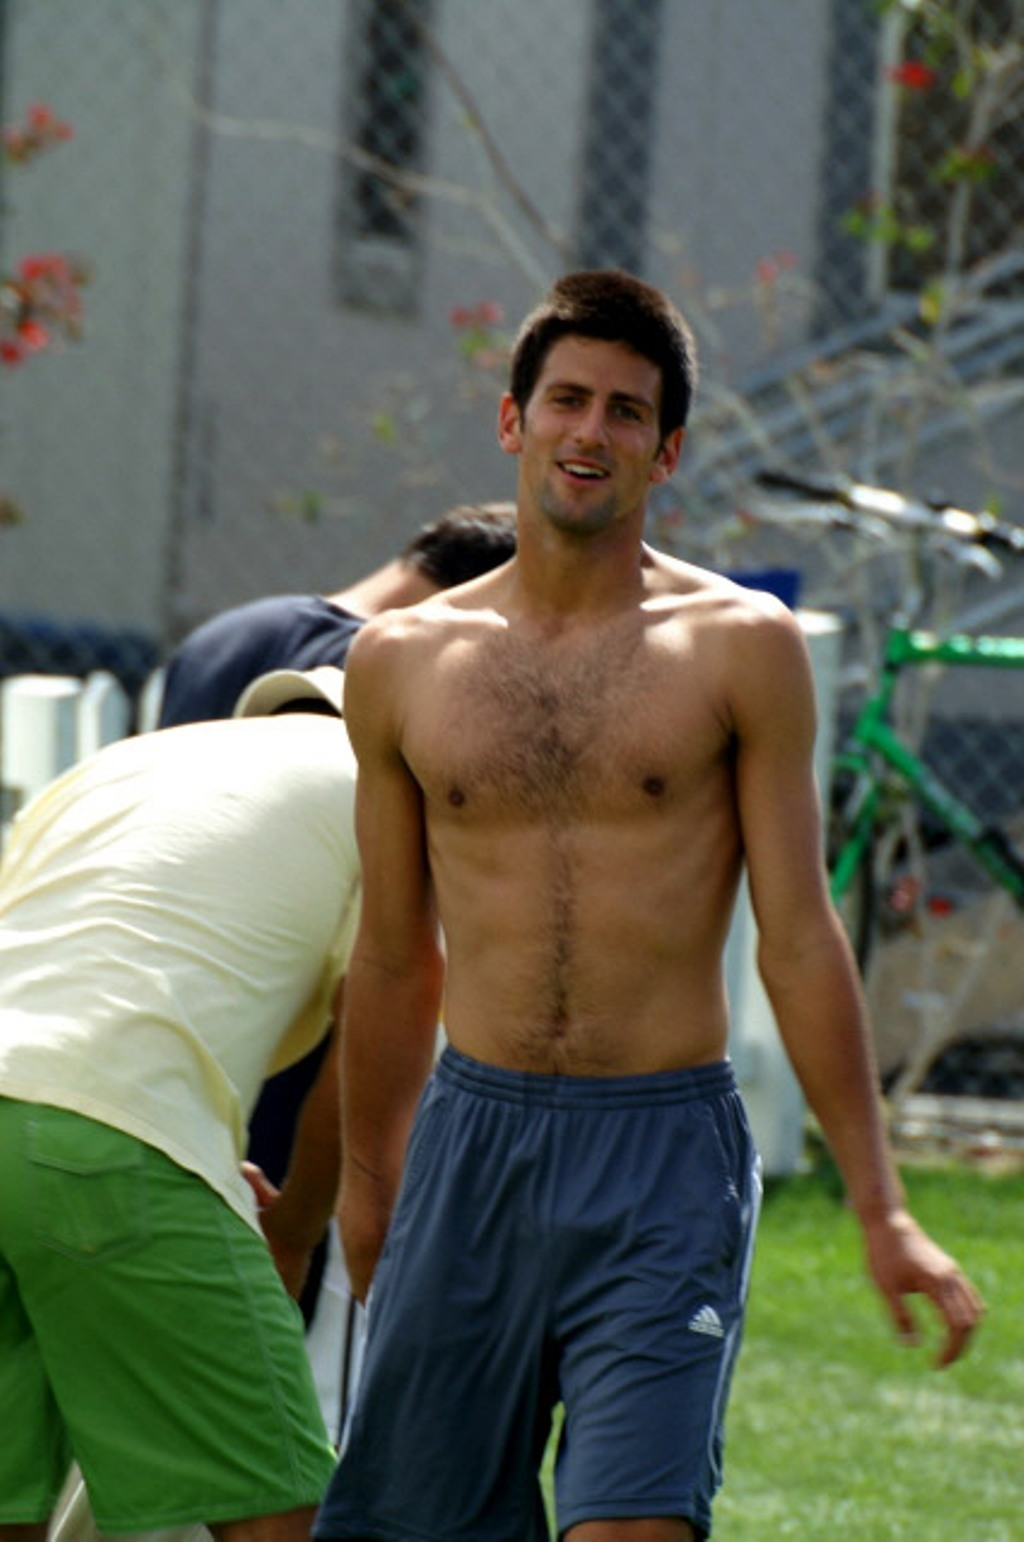 novak shirtless bulge..